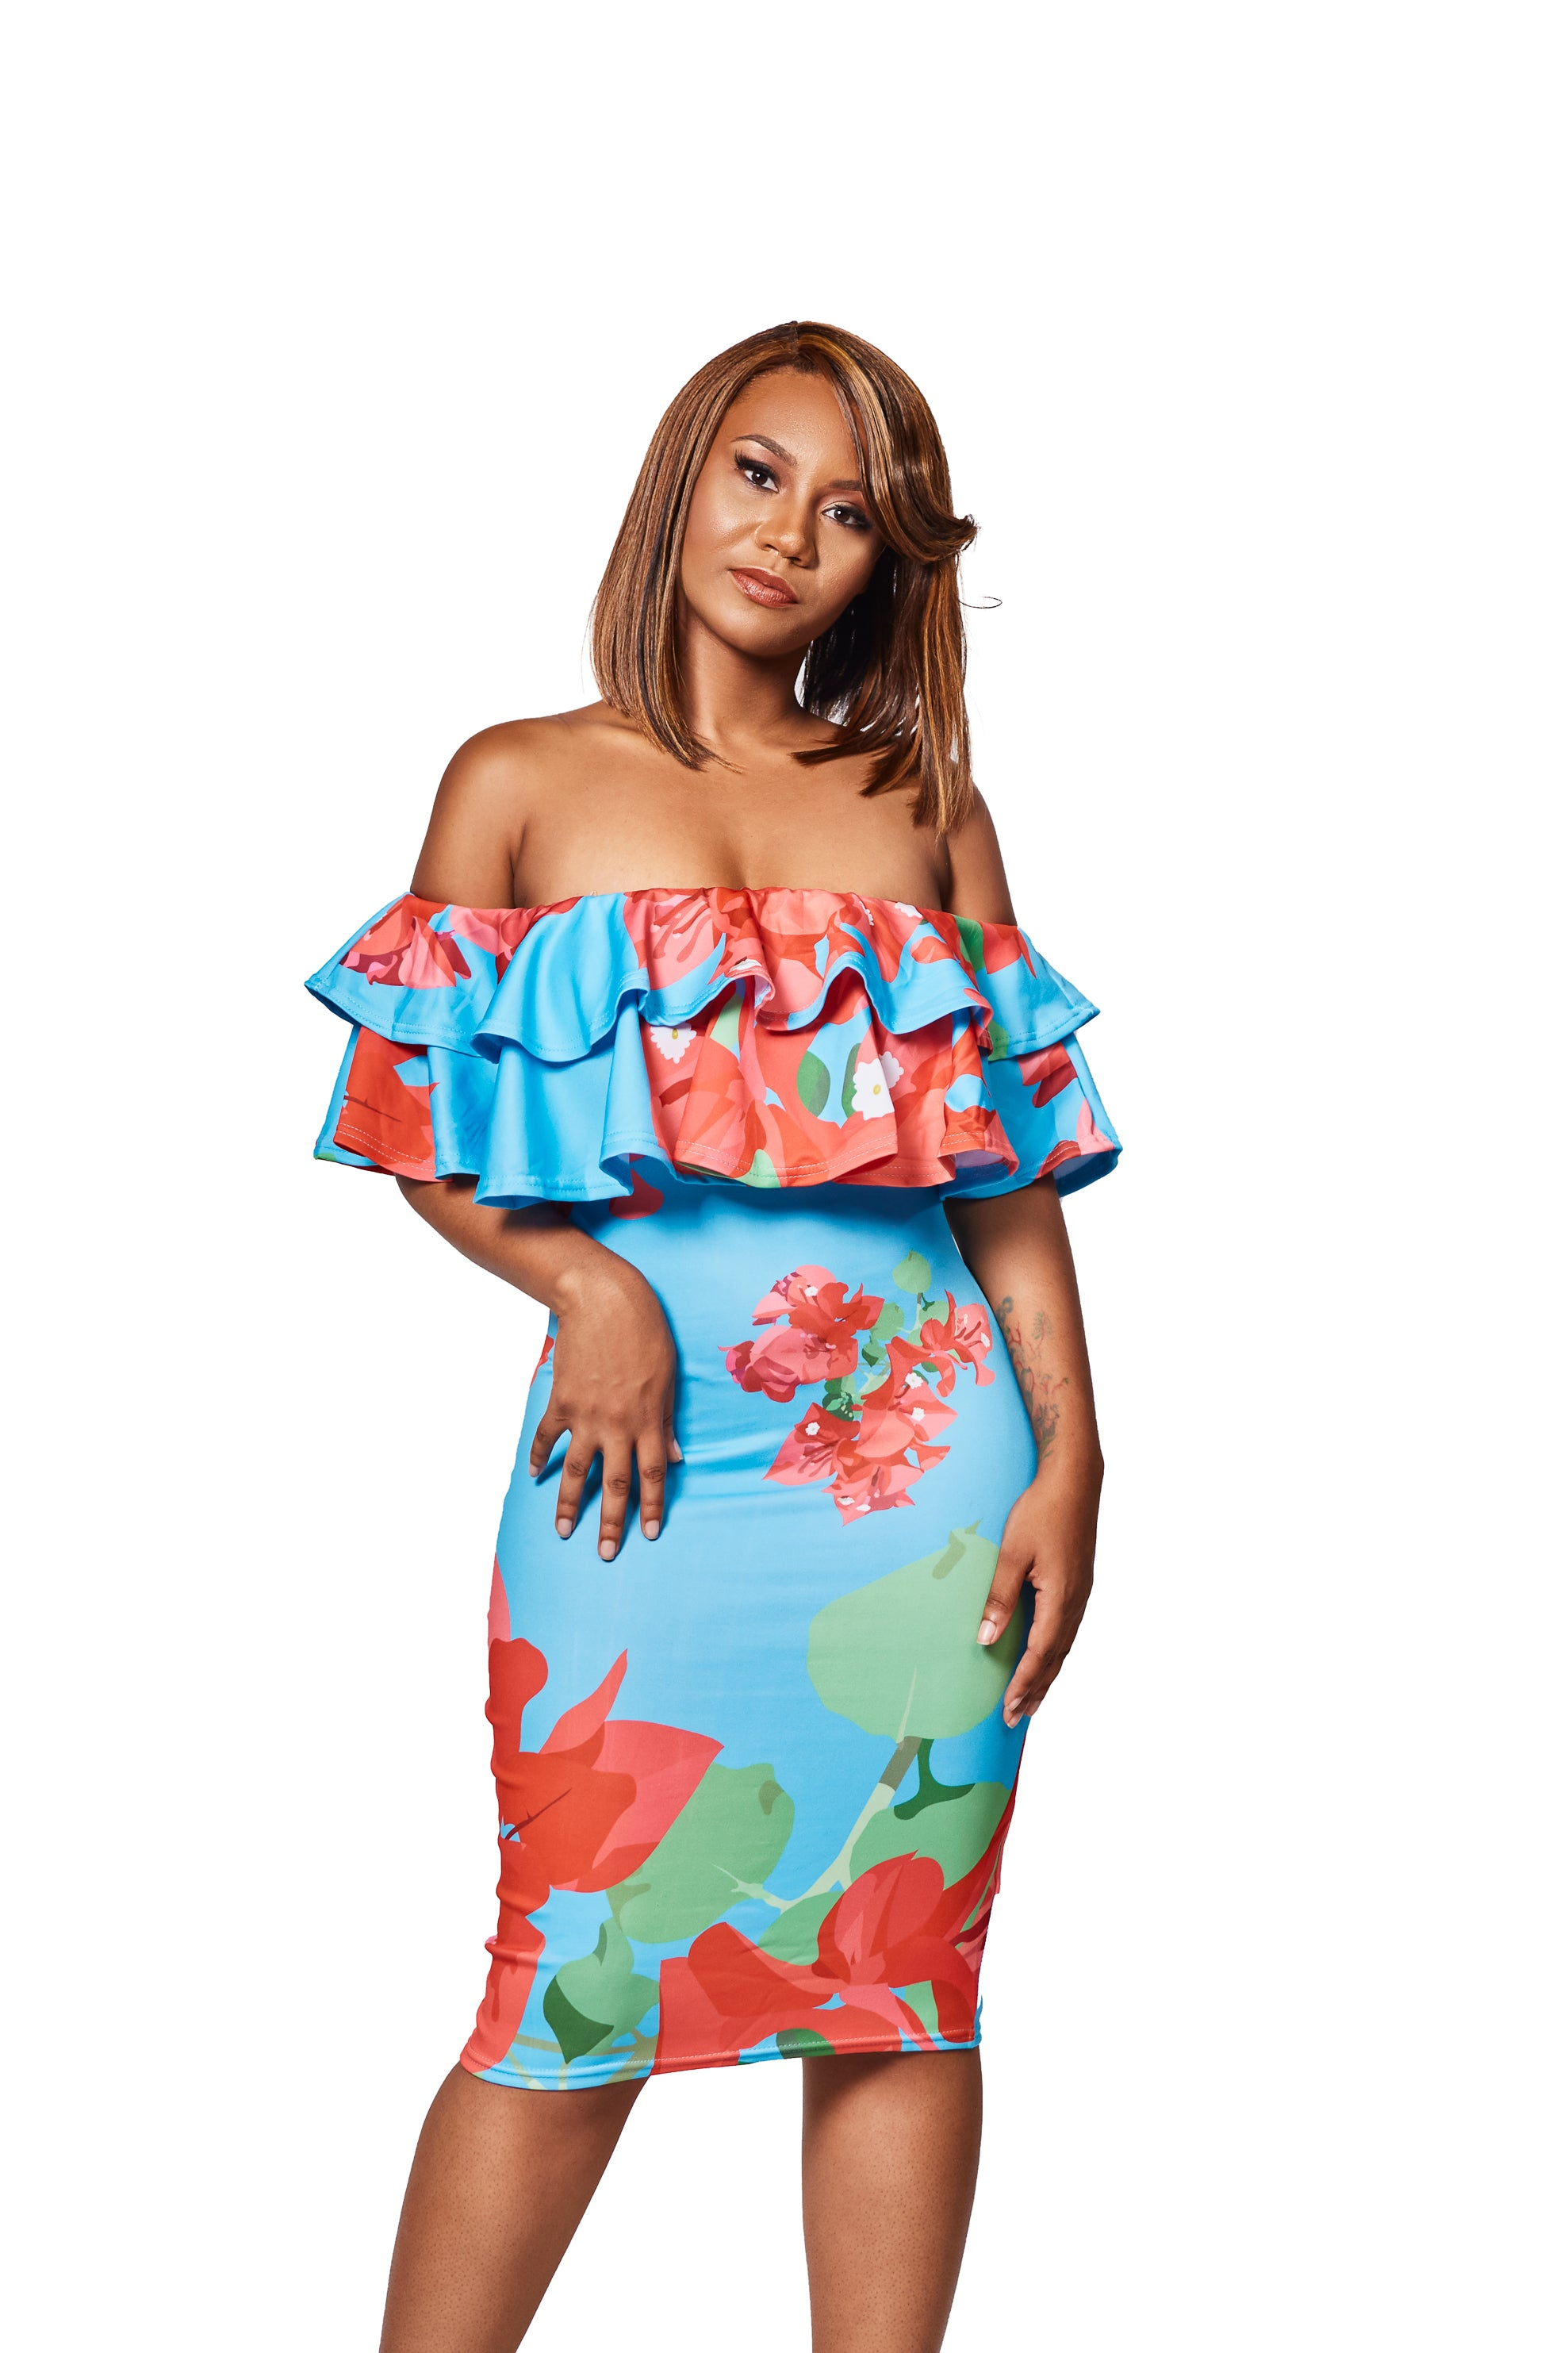 The Glara Off Shoulder Dress